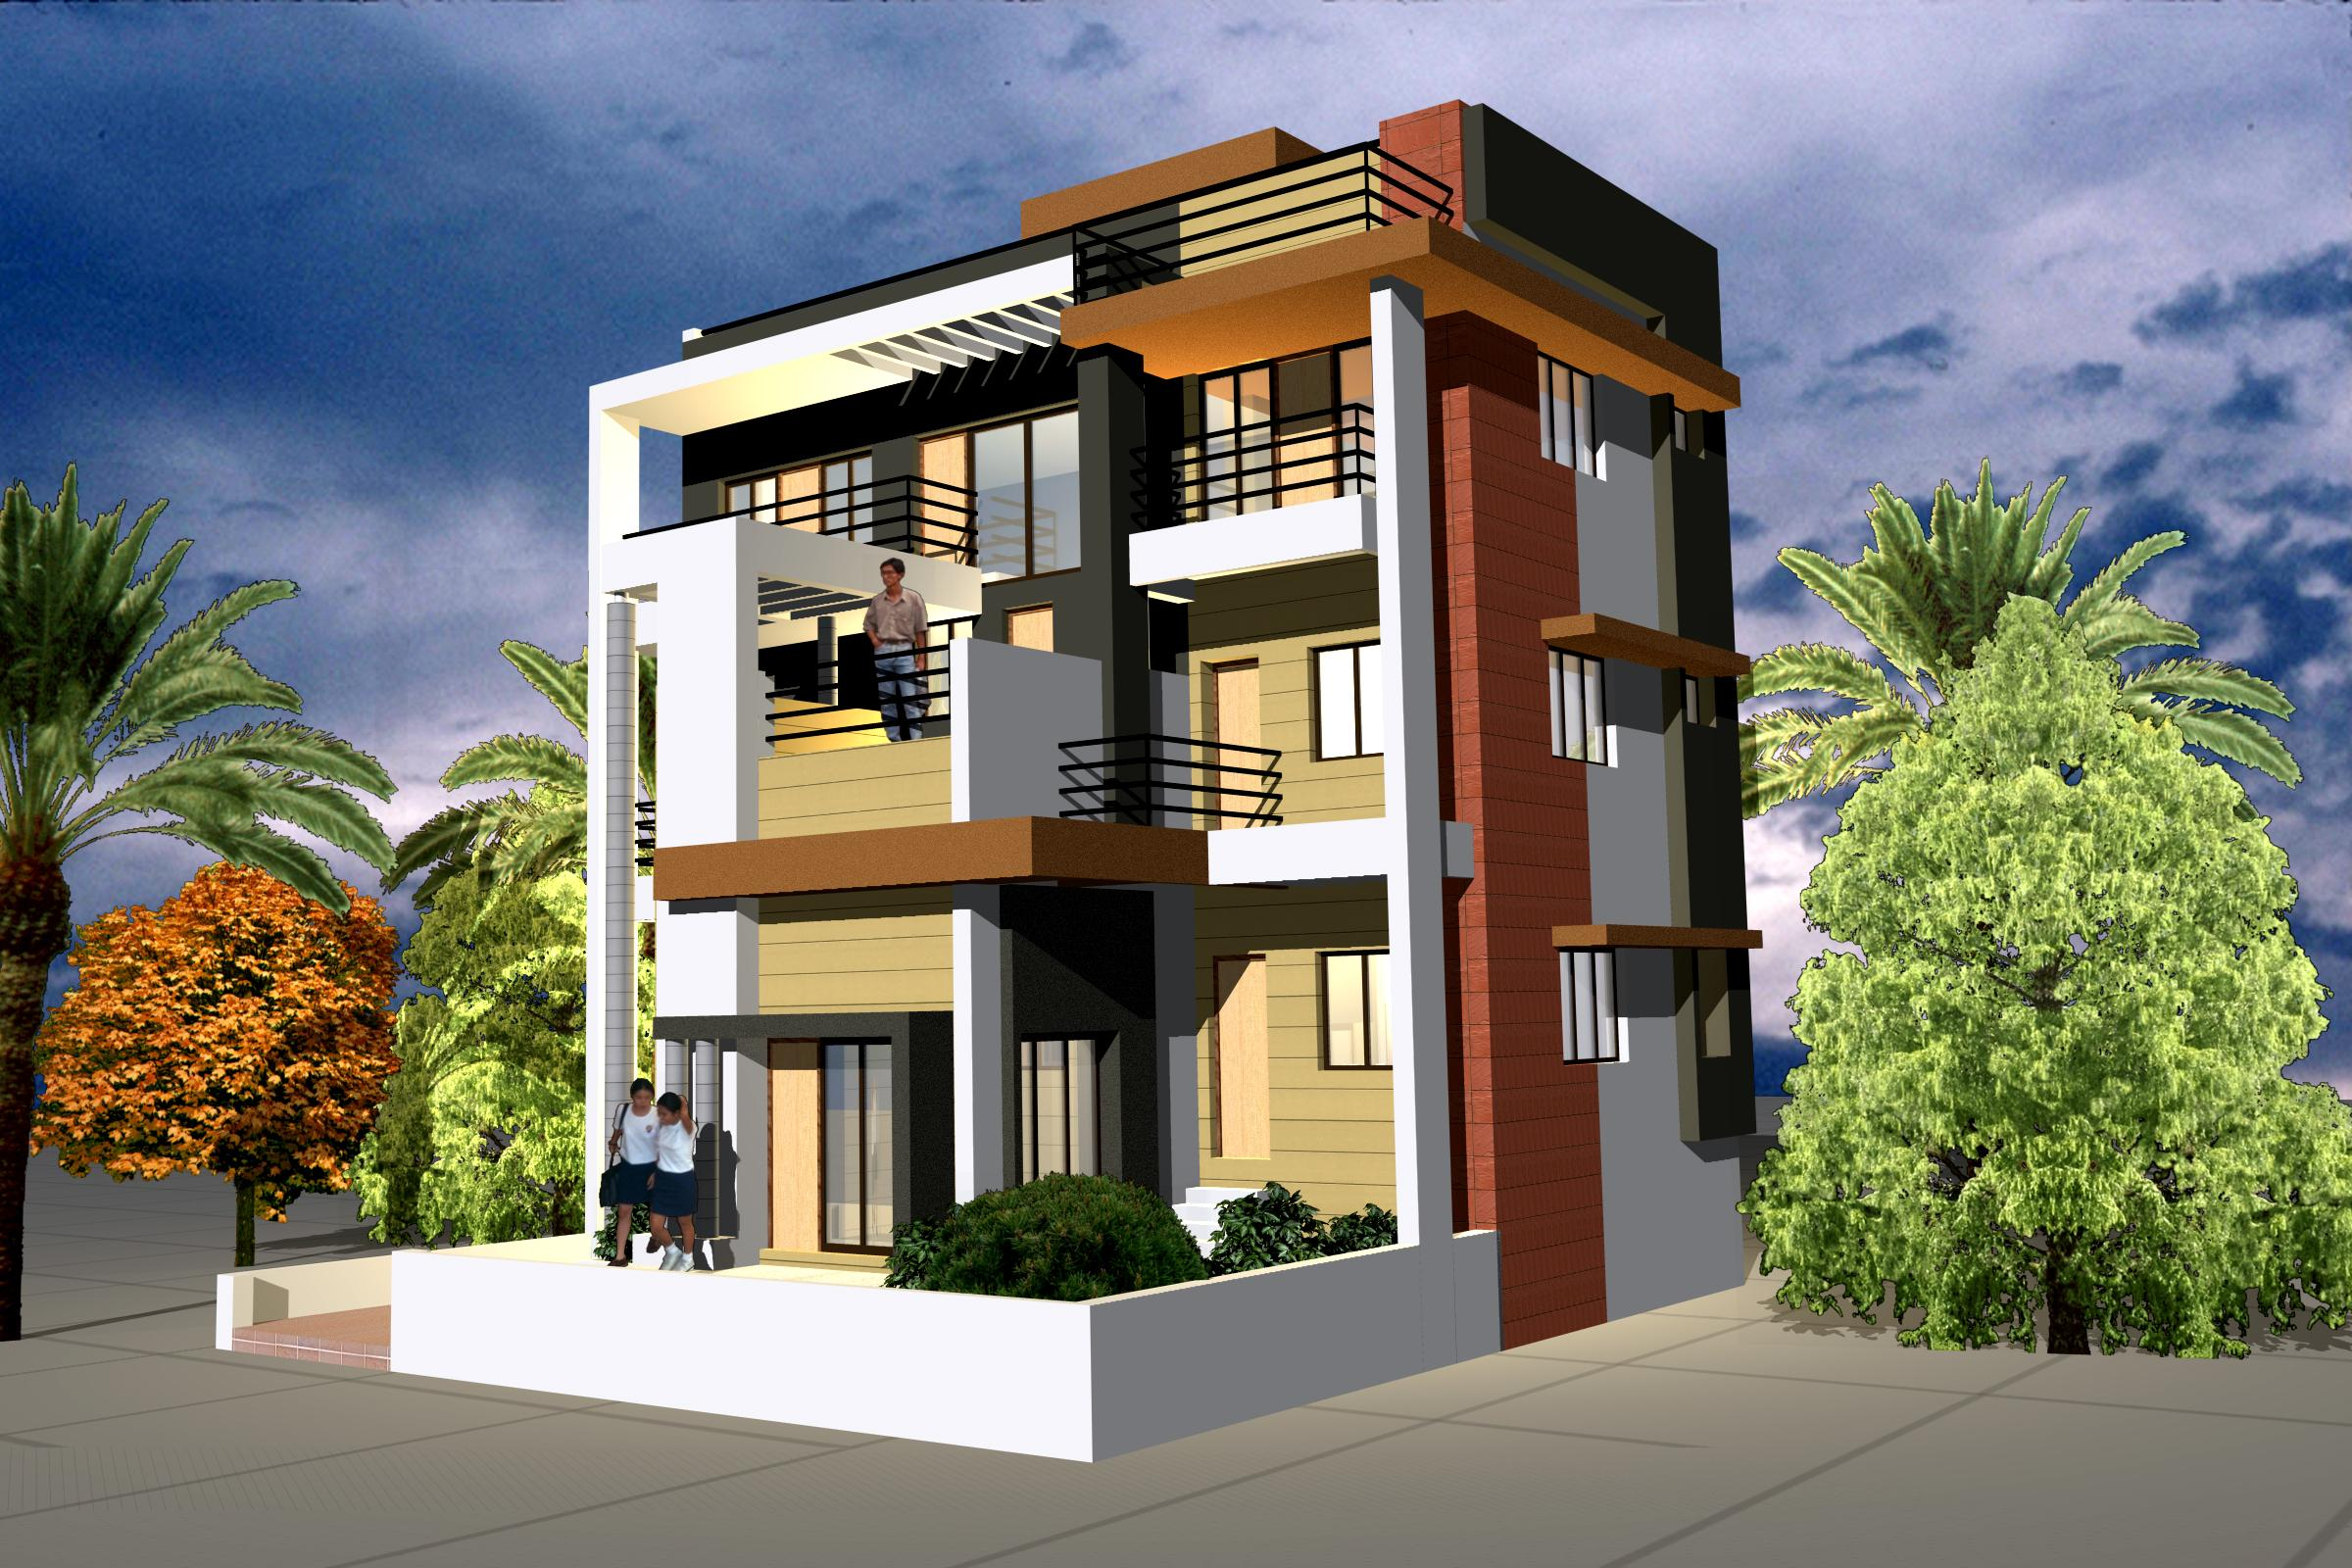 Exterior elevation design gharexpert for Elevation design photos residential houses